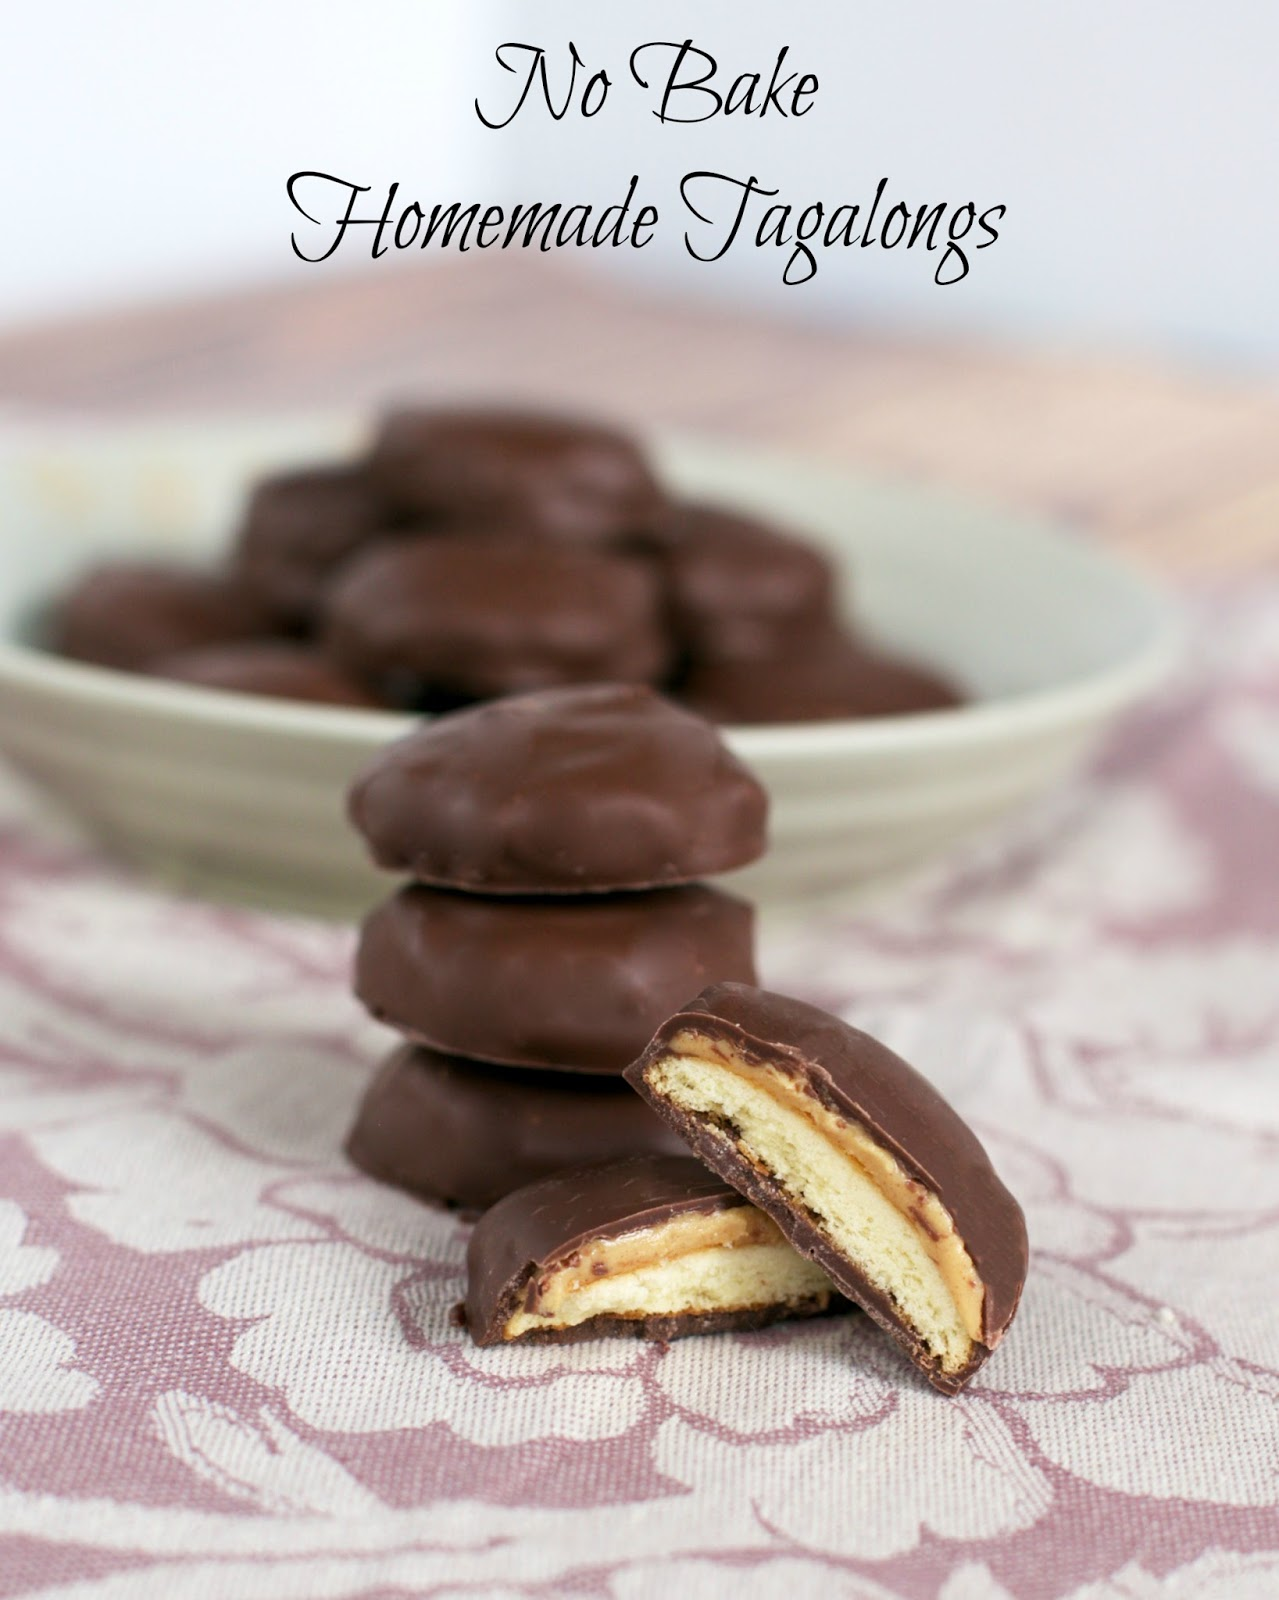 No Bake Homemade Tagalongs {Peanut Butter Patties} - tastes just like the real thing without turning on the oven!